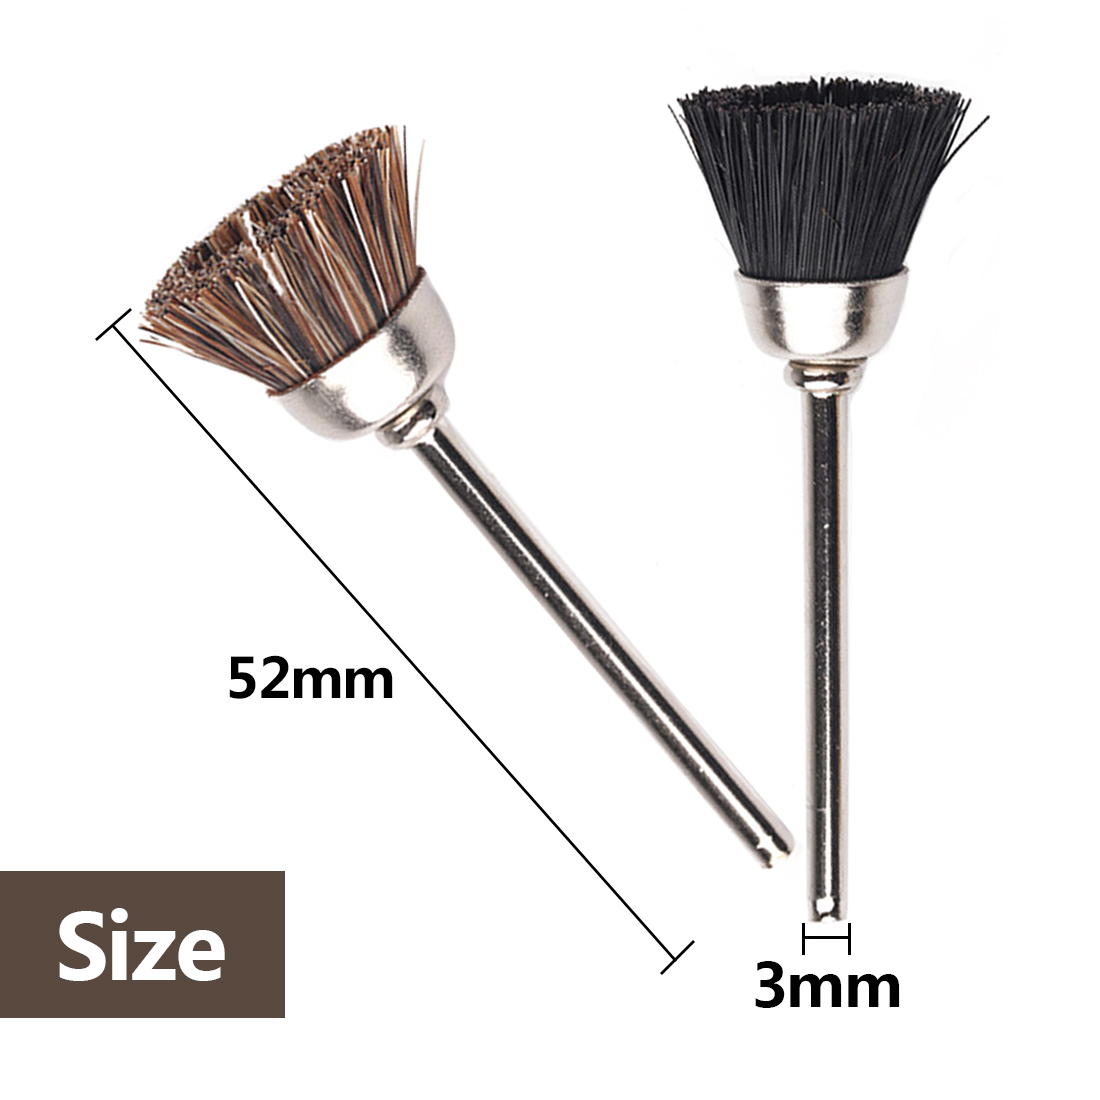 Metal Buffing Polishing 5pc 3mm Diameter Dremel Accessories Soft Pig /Horse Hair Polishing Cup Brush Wheel For Drill Rotary Tool